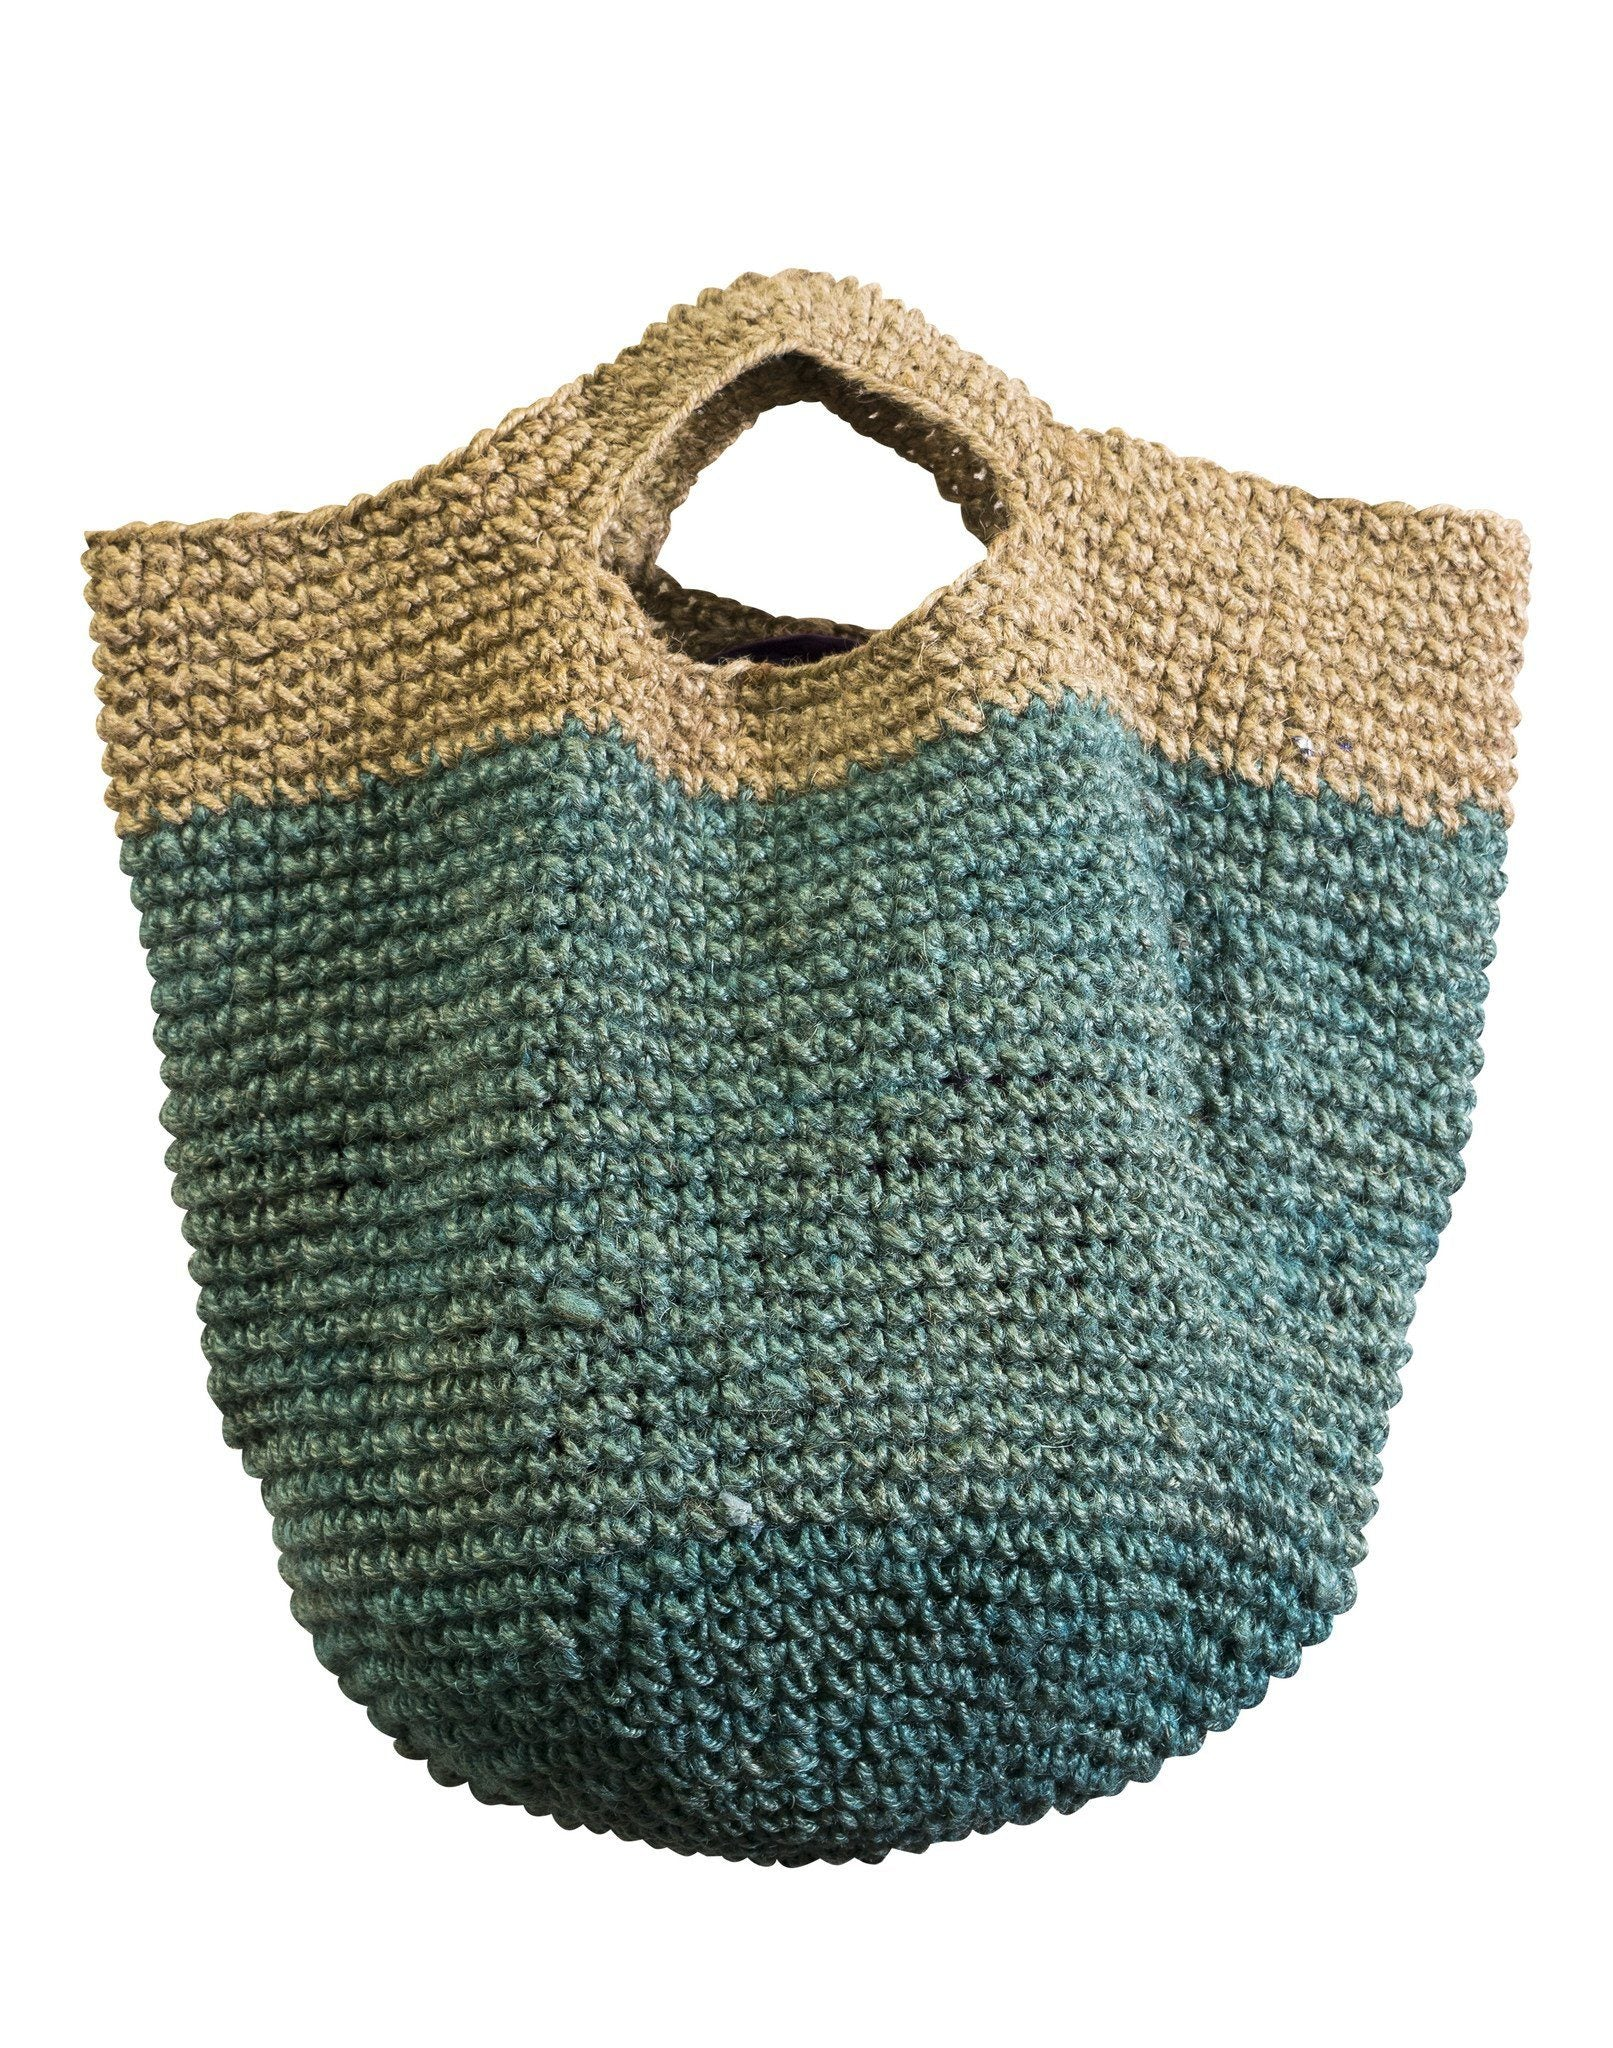 Handmade Crochet Hemp Bag - CCCollections